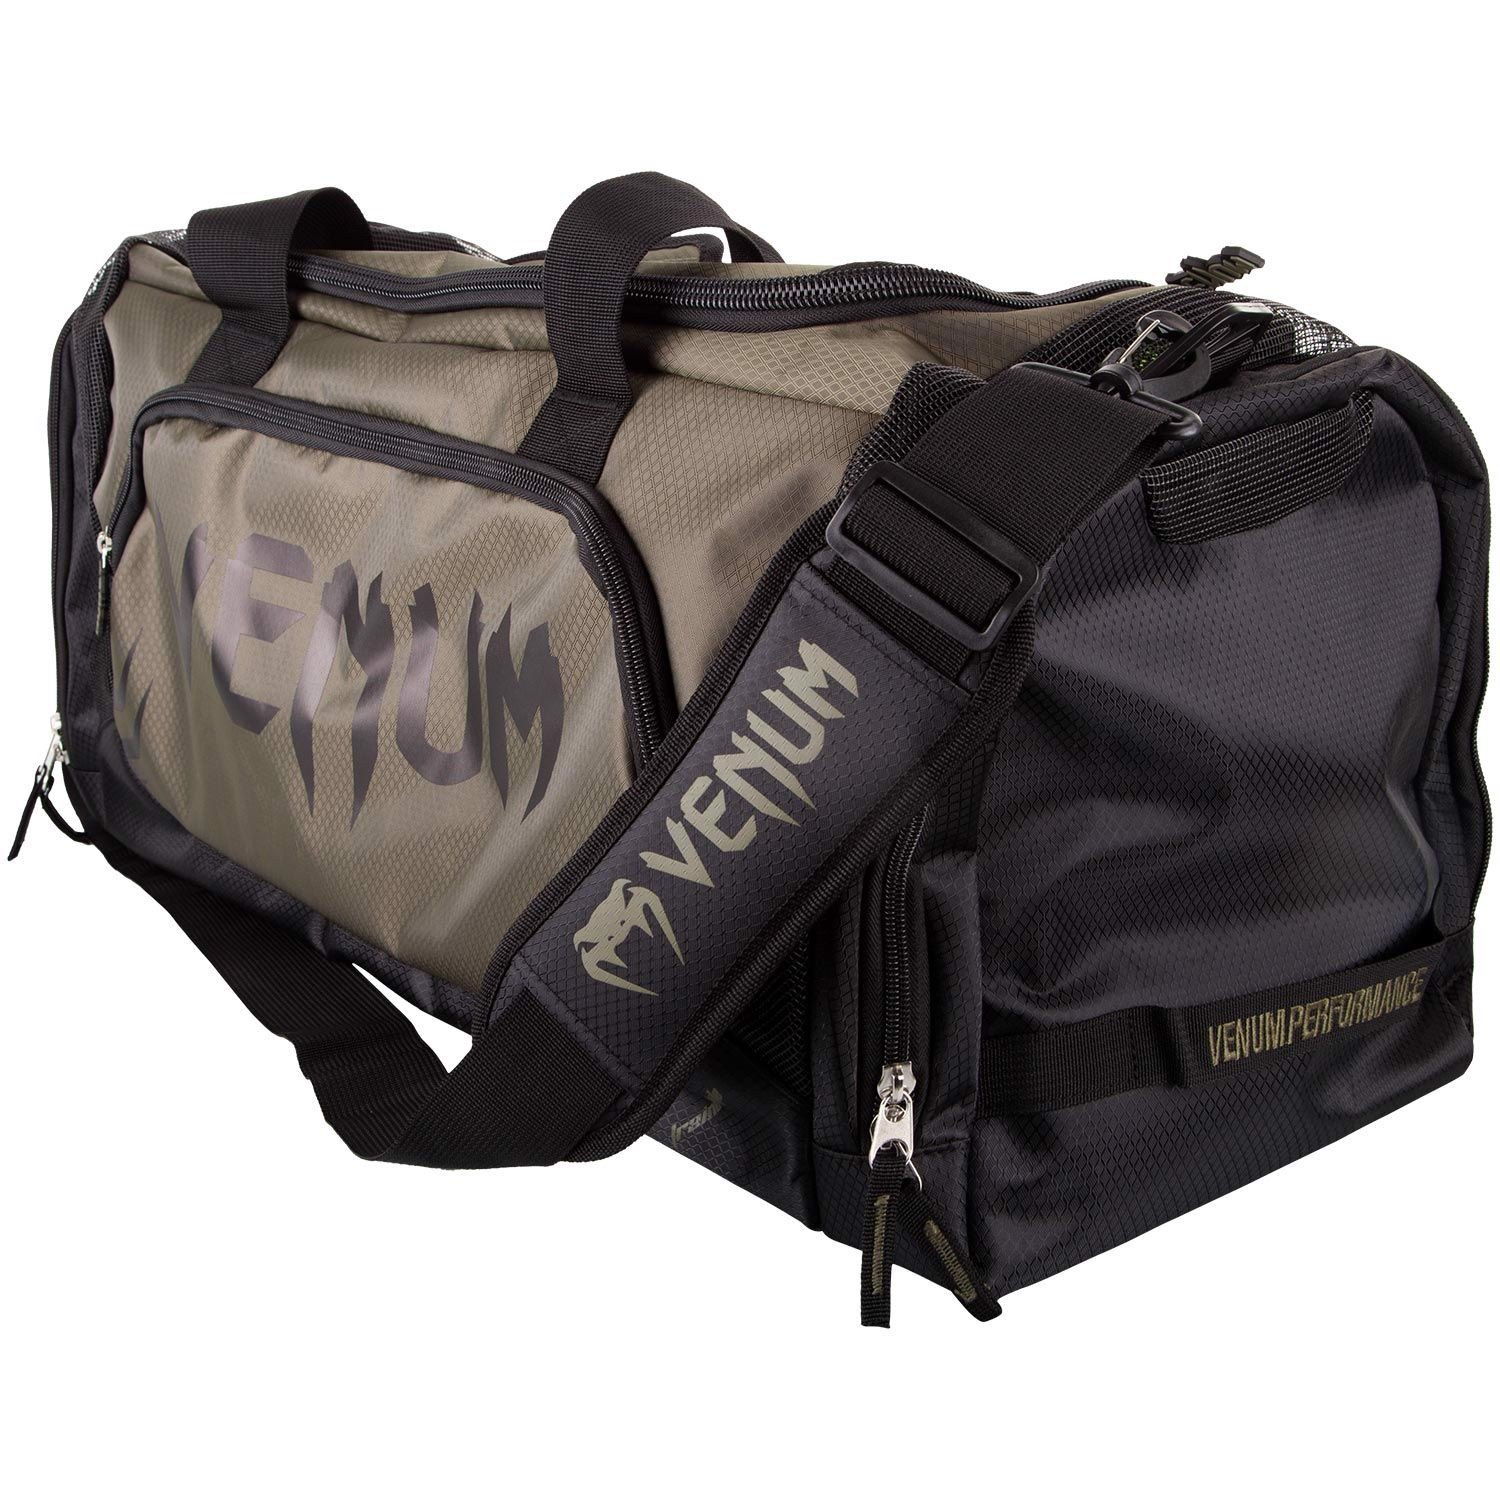 TÚI VENUM TRAINER LITE SPORTS BAG - KHAKI/BLACK